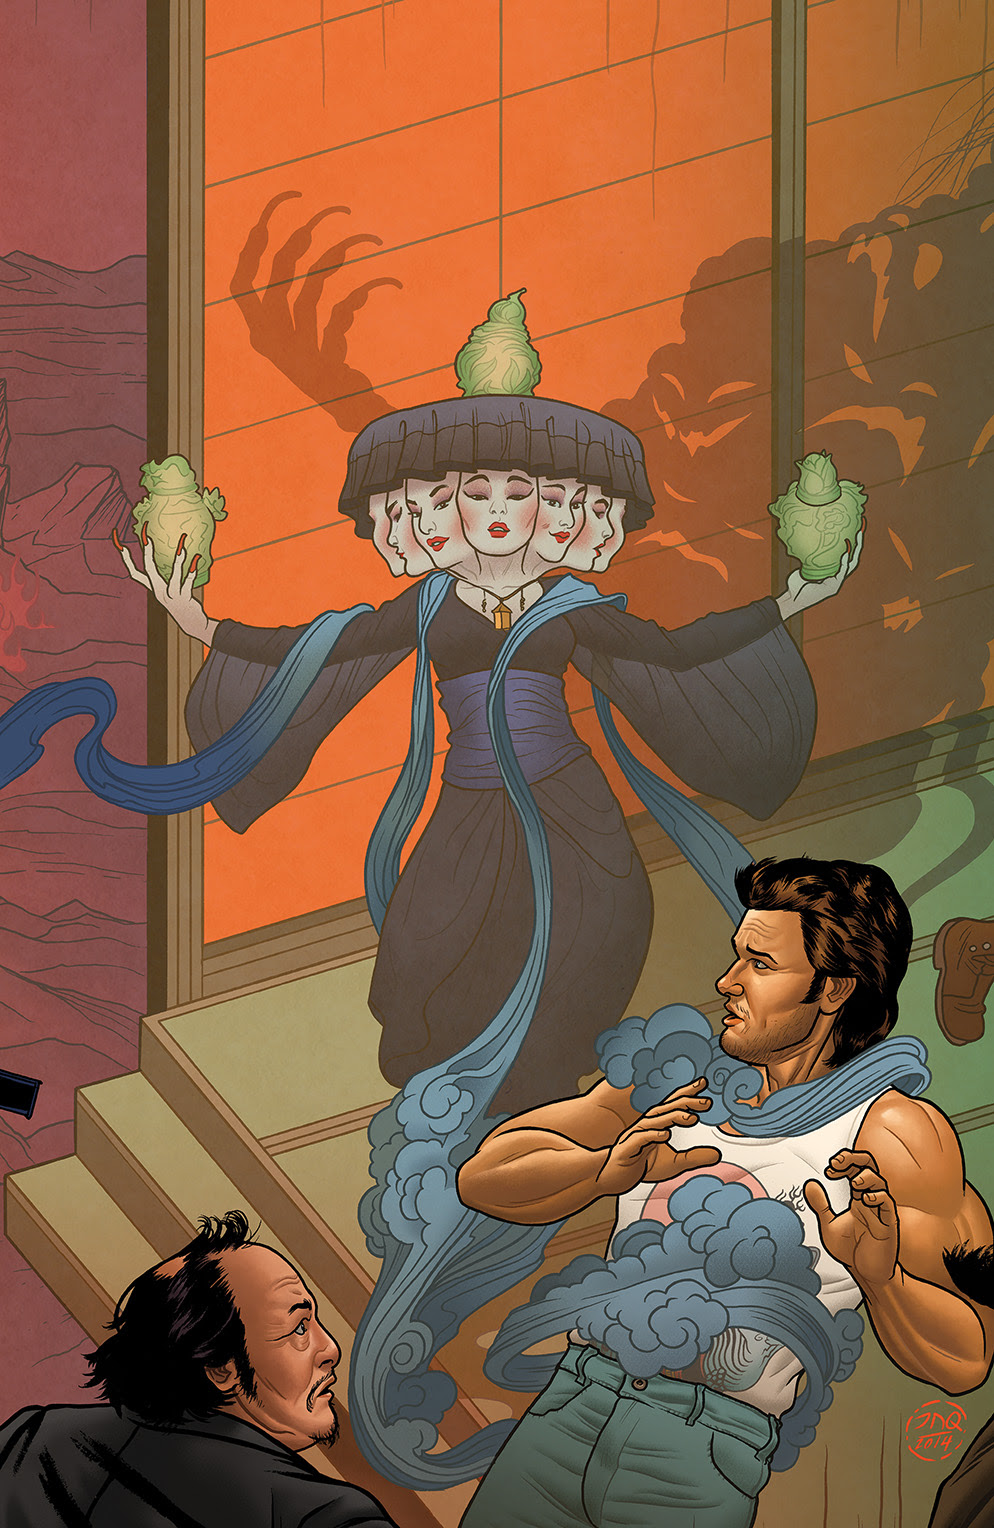 BIG TROUBLE IN LITTLE CHINA #3 Cover B by Joe Quinones